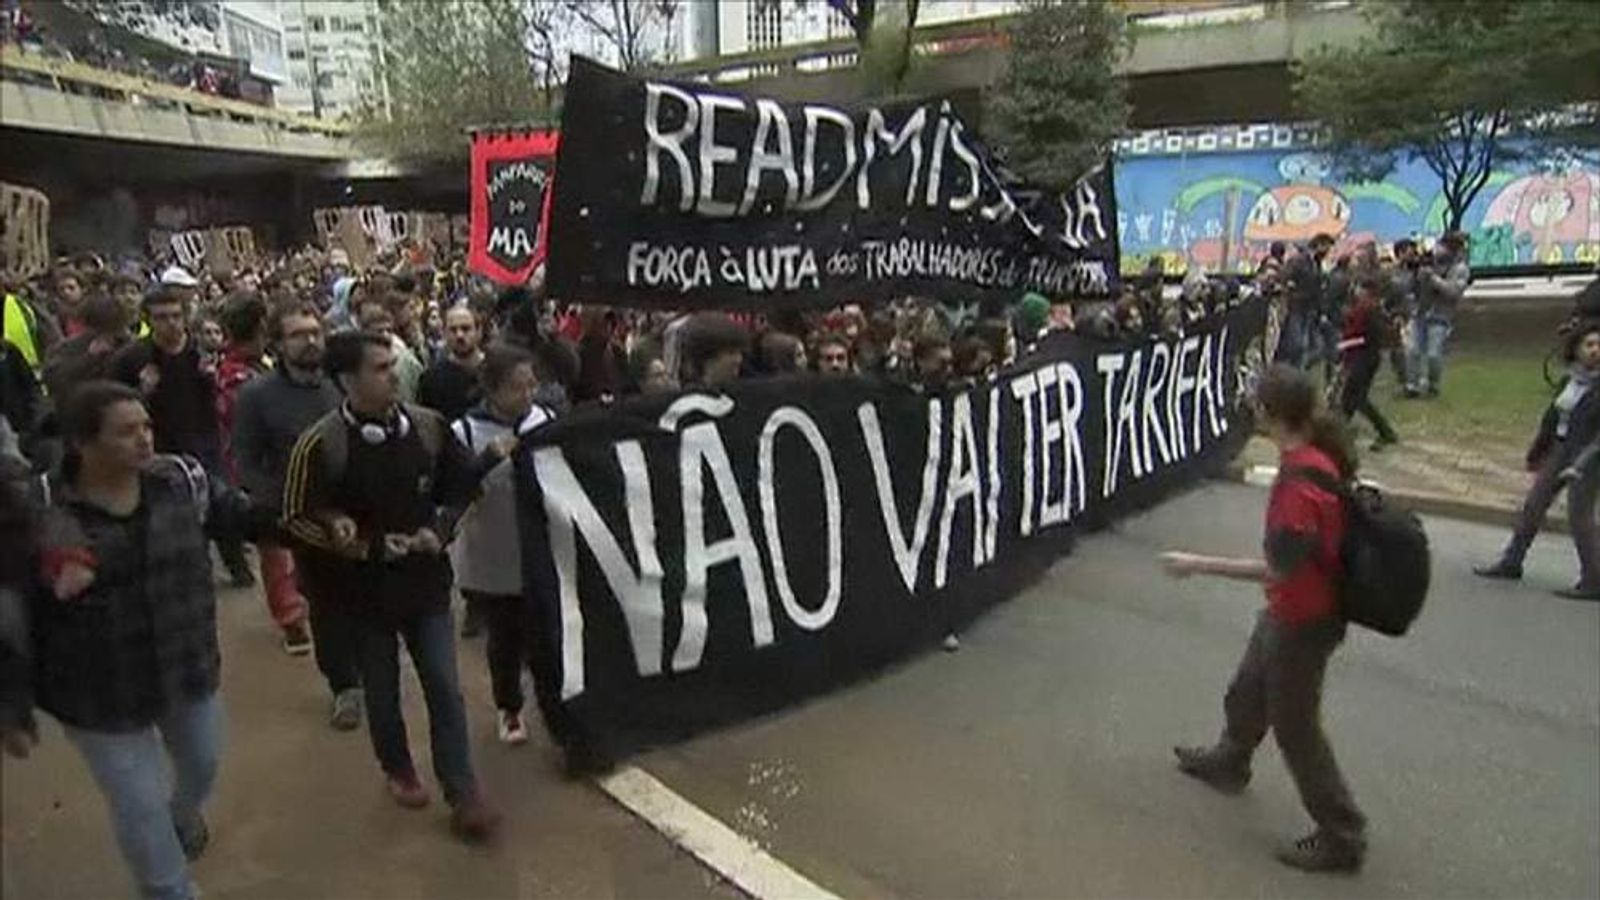 Protesters march through Sao Paulo to demand free public transport